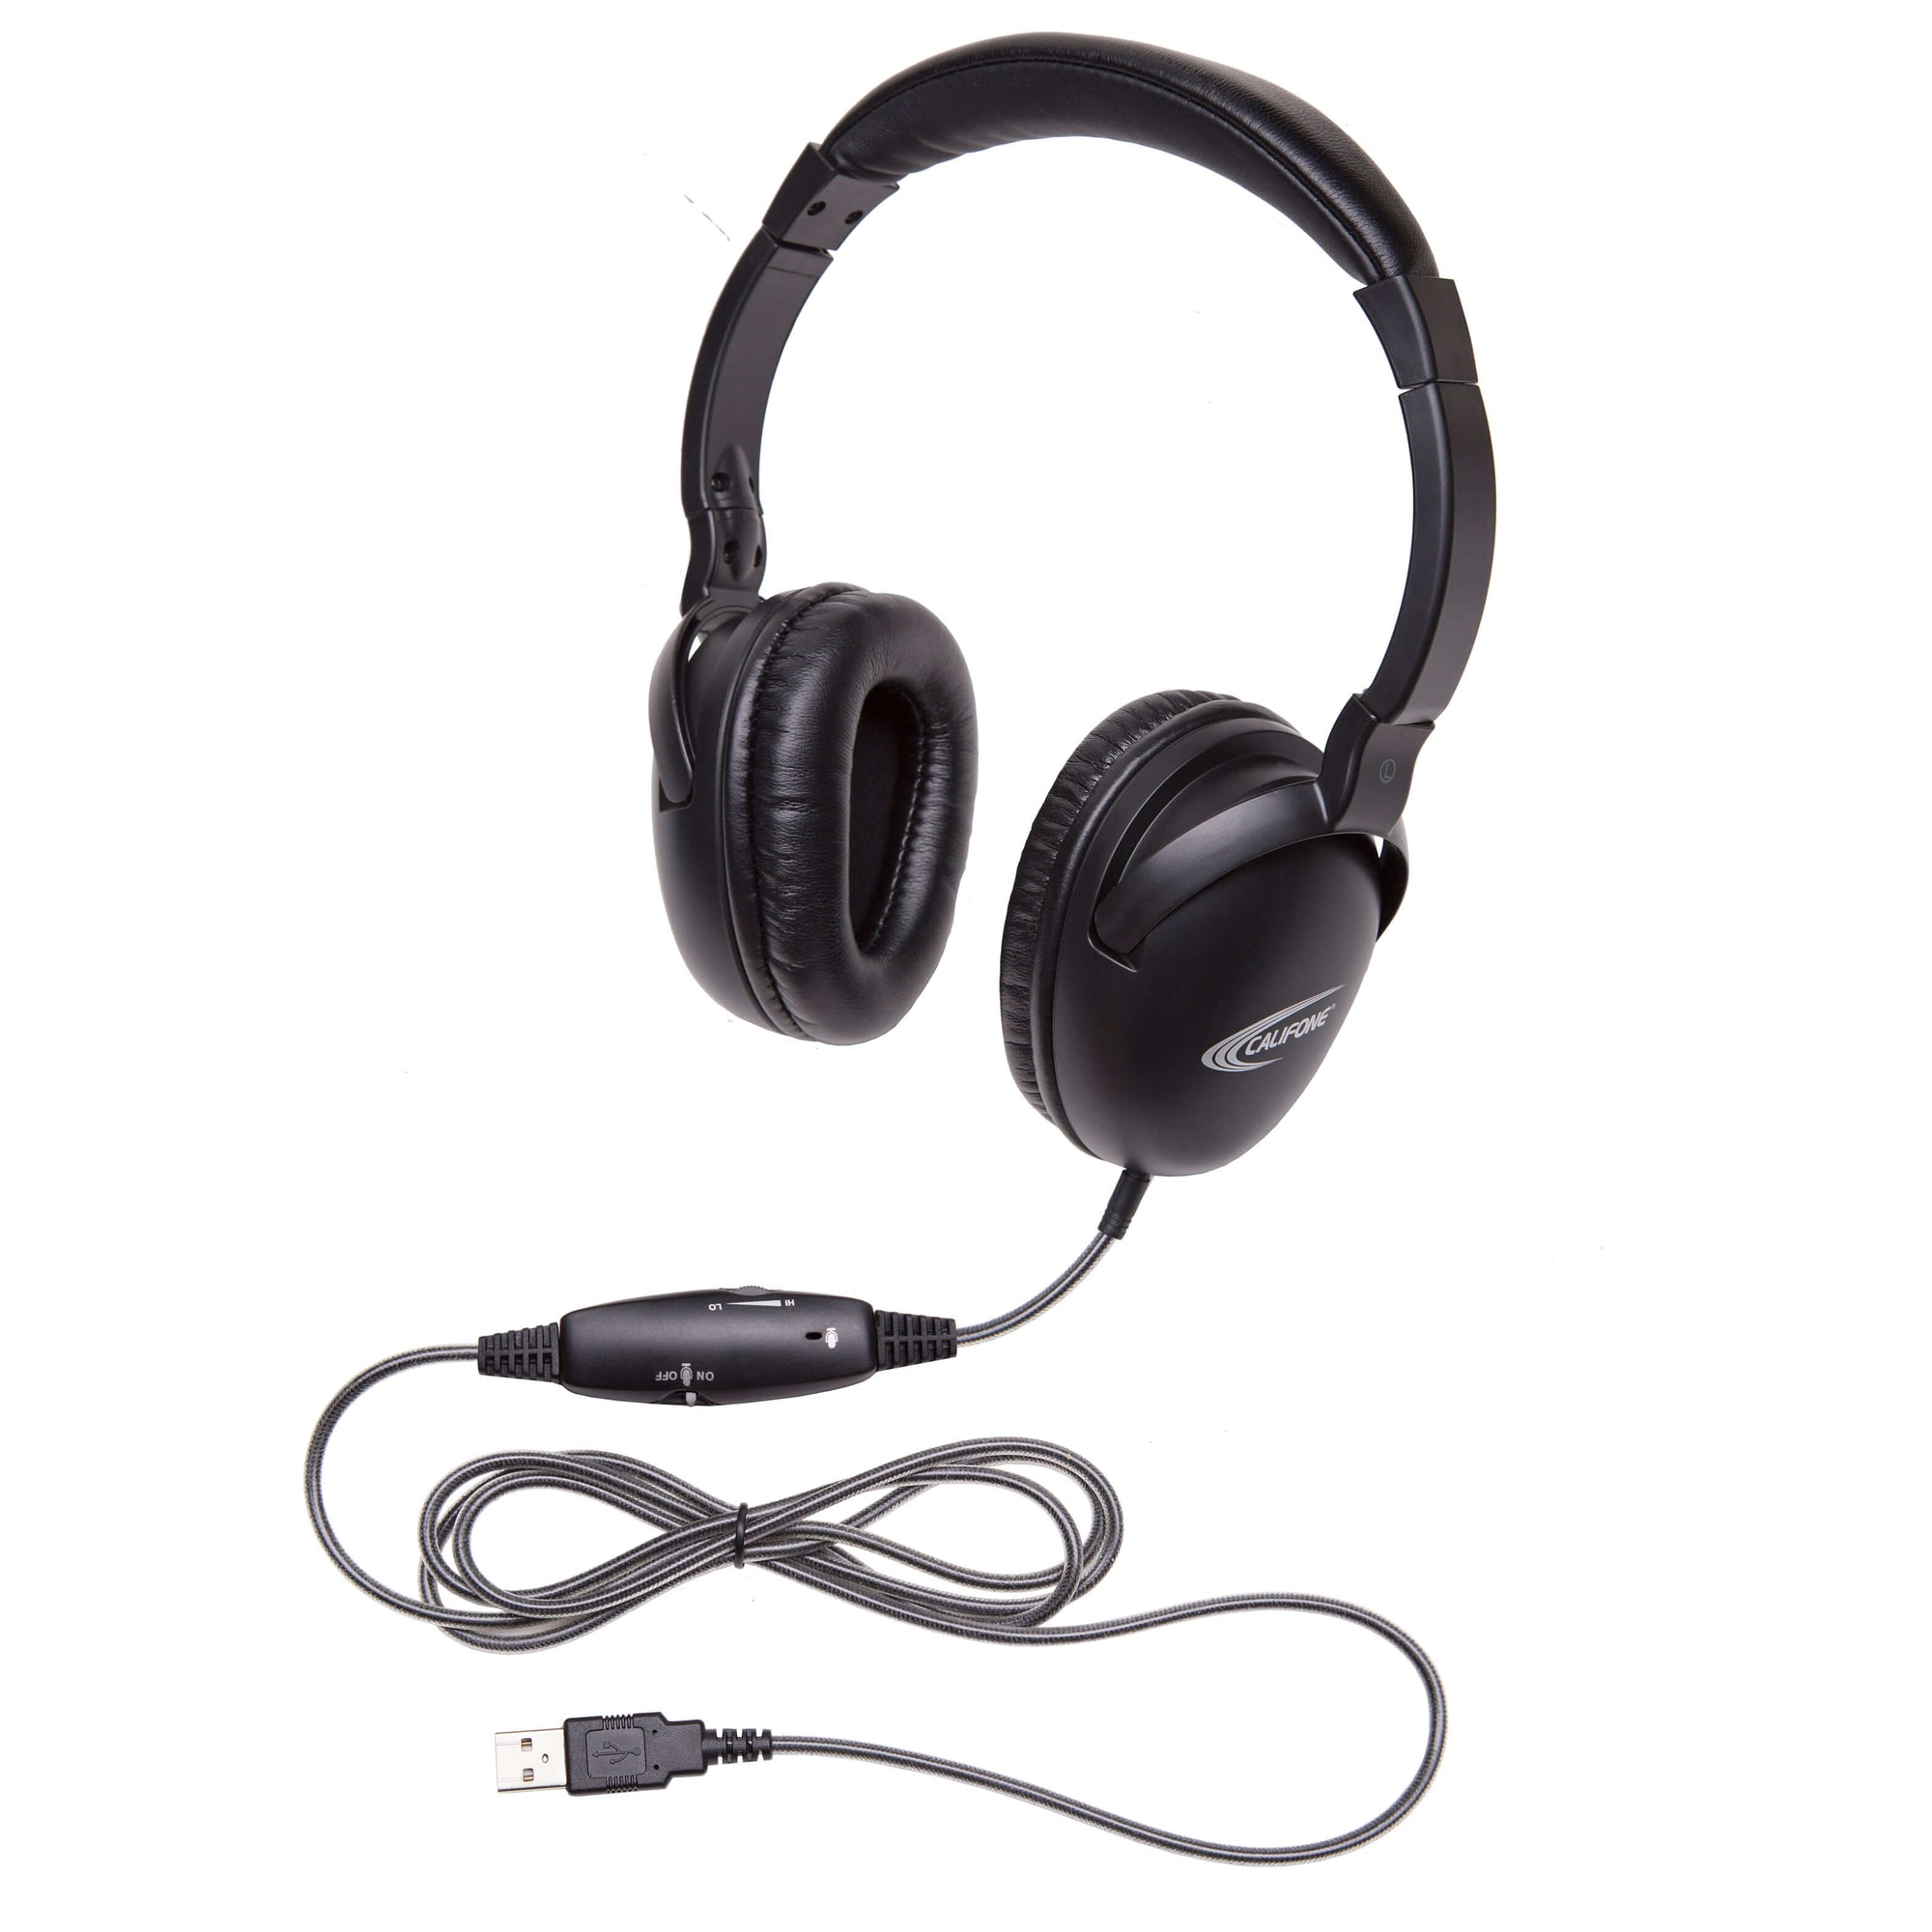 Califone NeoTech Plus USB Headset with In-line Mic - Learning Headphones